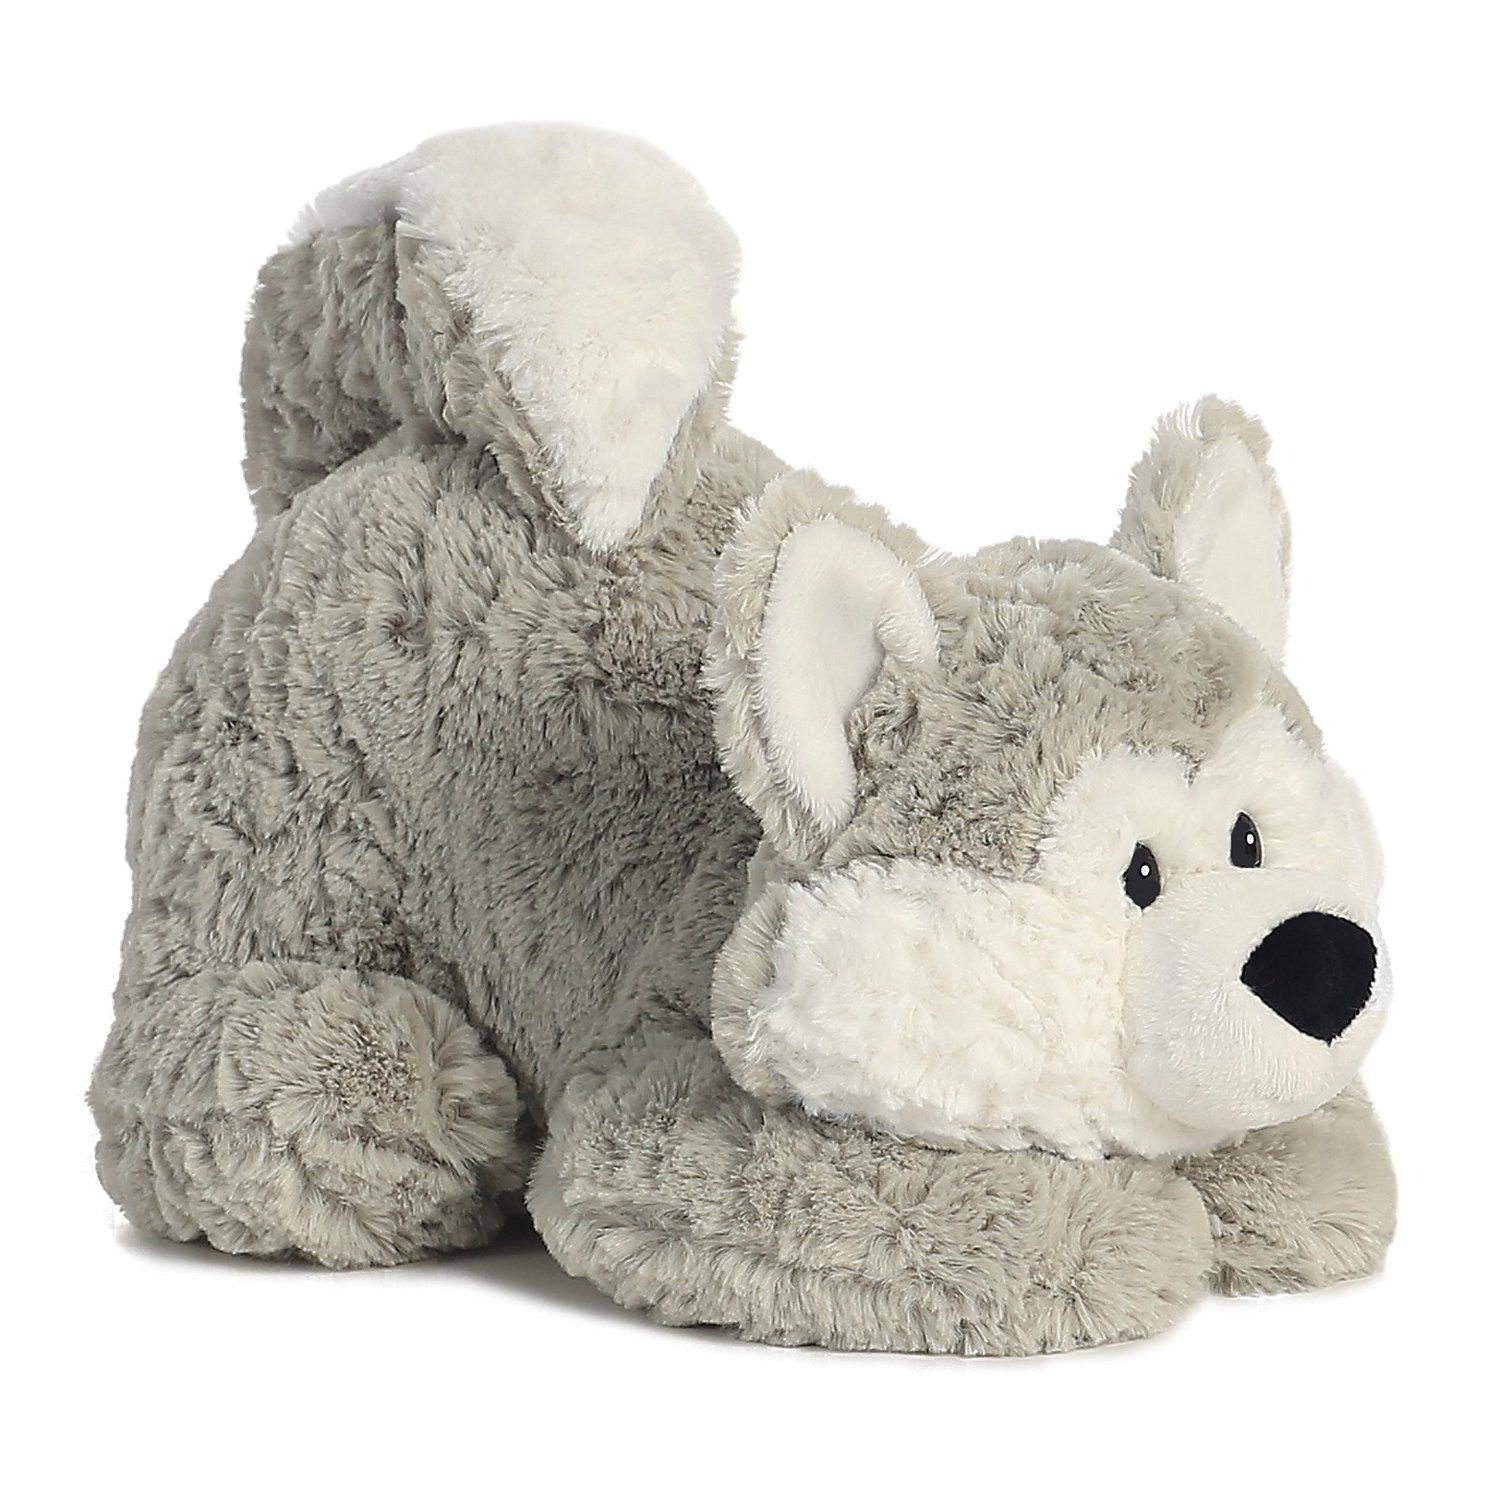 Howler Husky Tushies 11 inch - Stuffed Animal by Aurora Plush (16852)